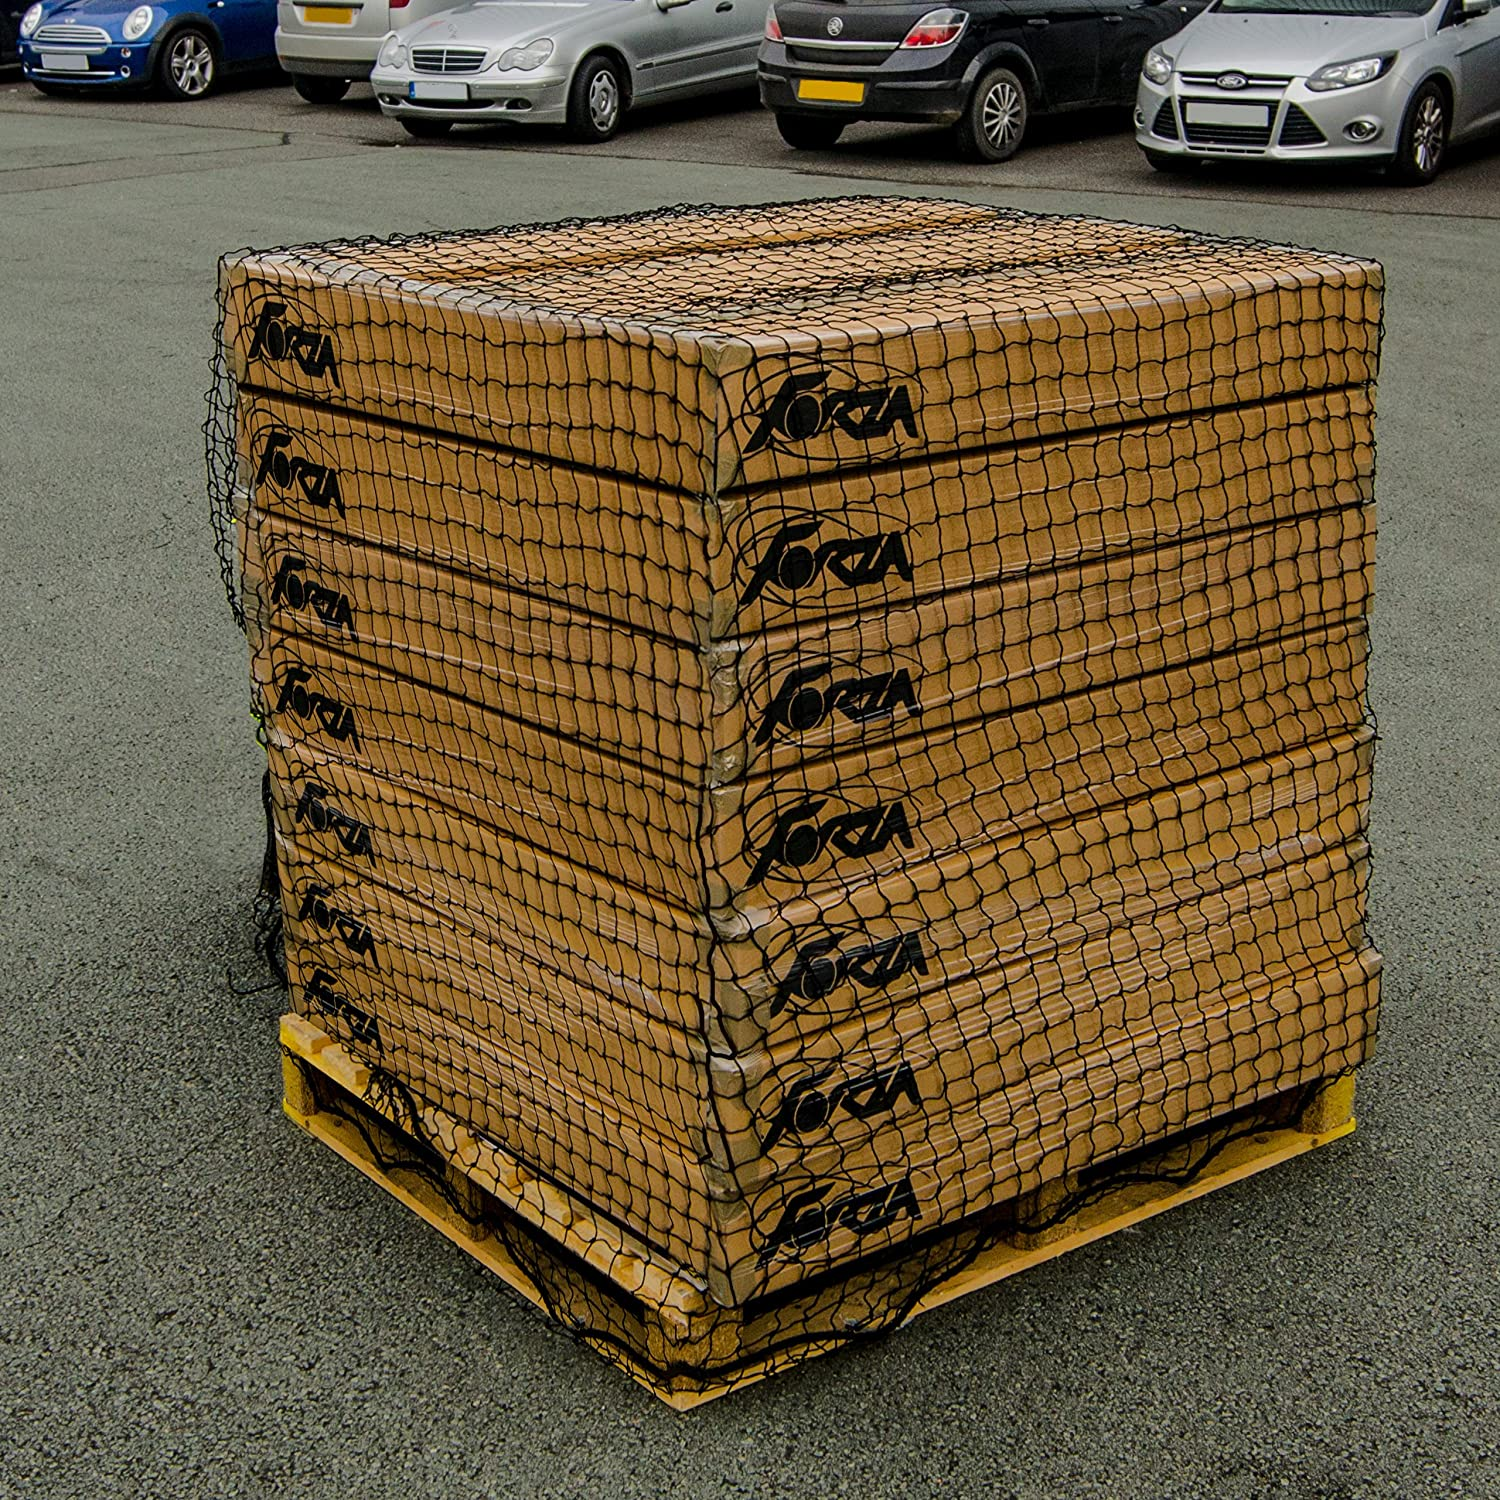 Heavy Duty Skip Net, The best cargo net for securing loads in trailers, skips and warehouses. [Net World Sports (12 x 10ft)